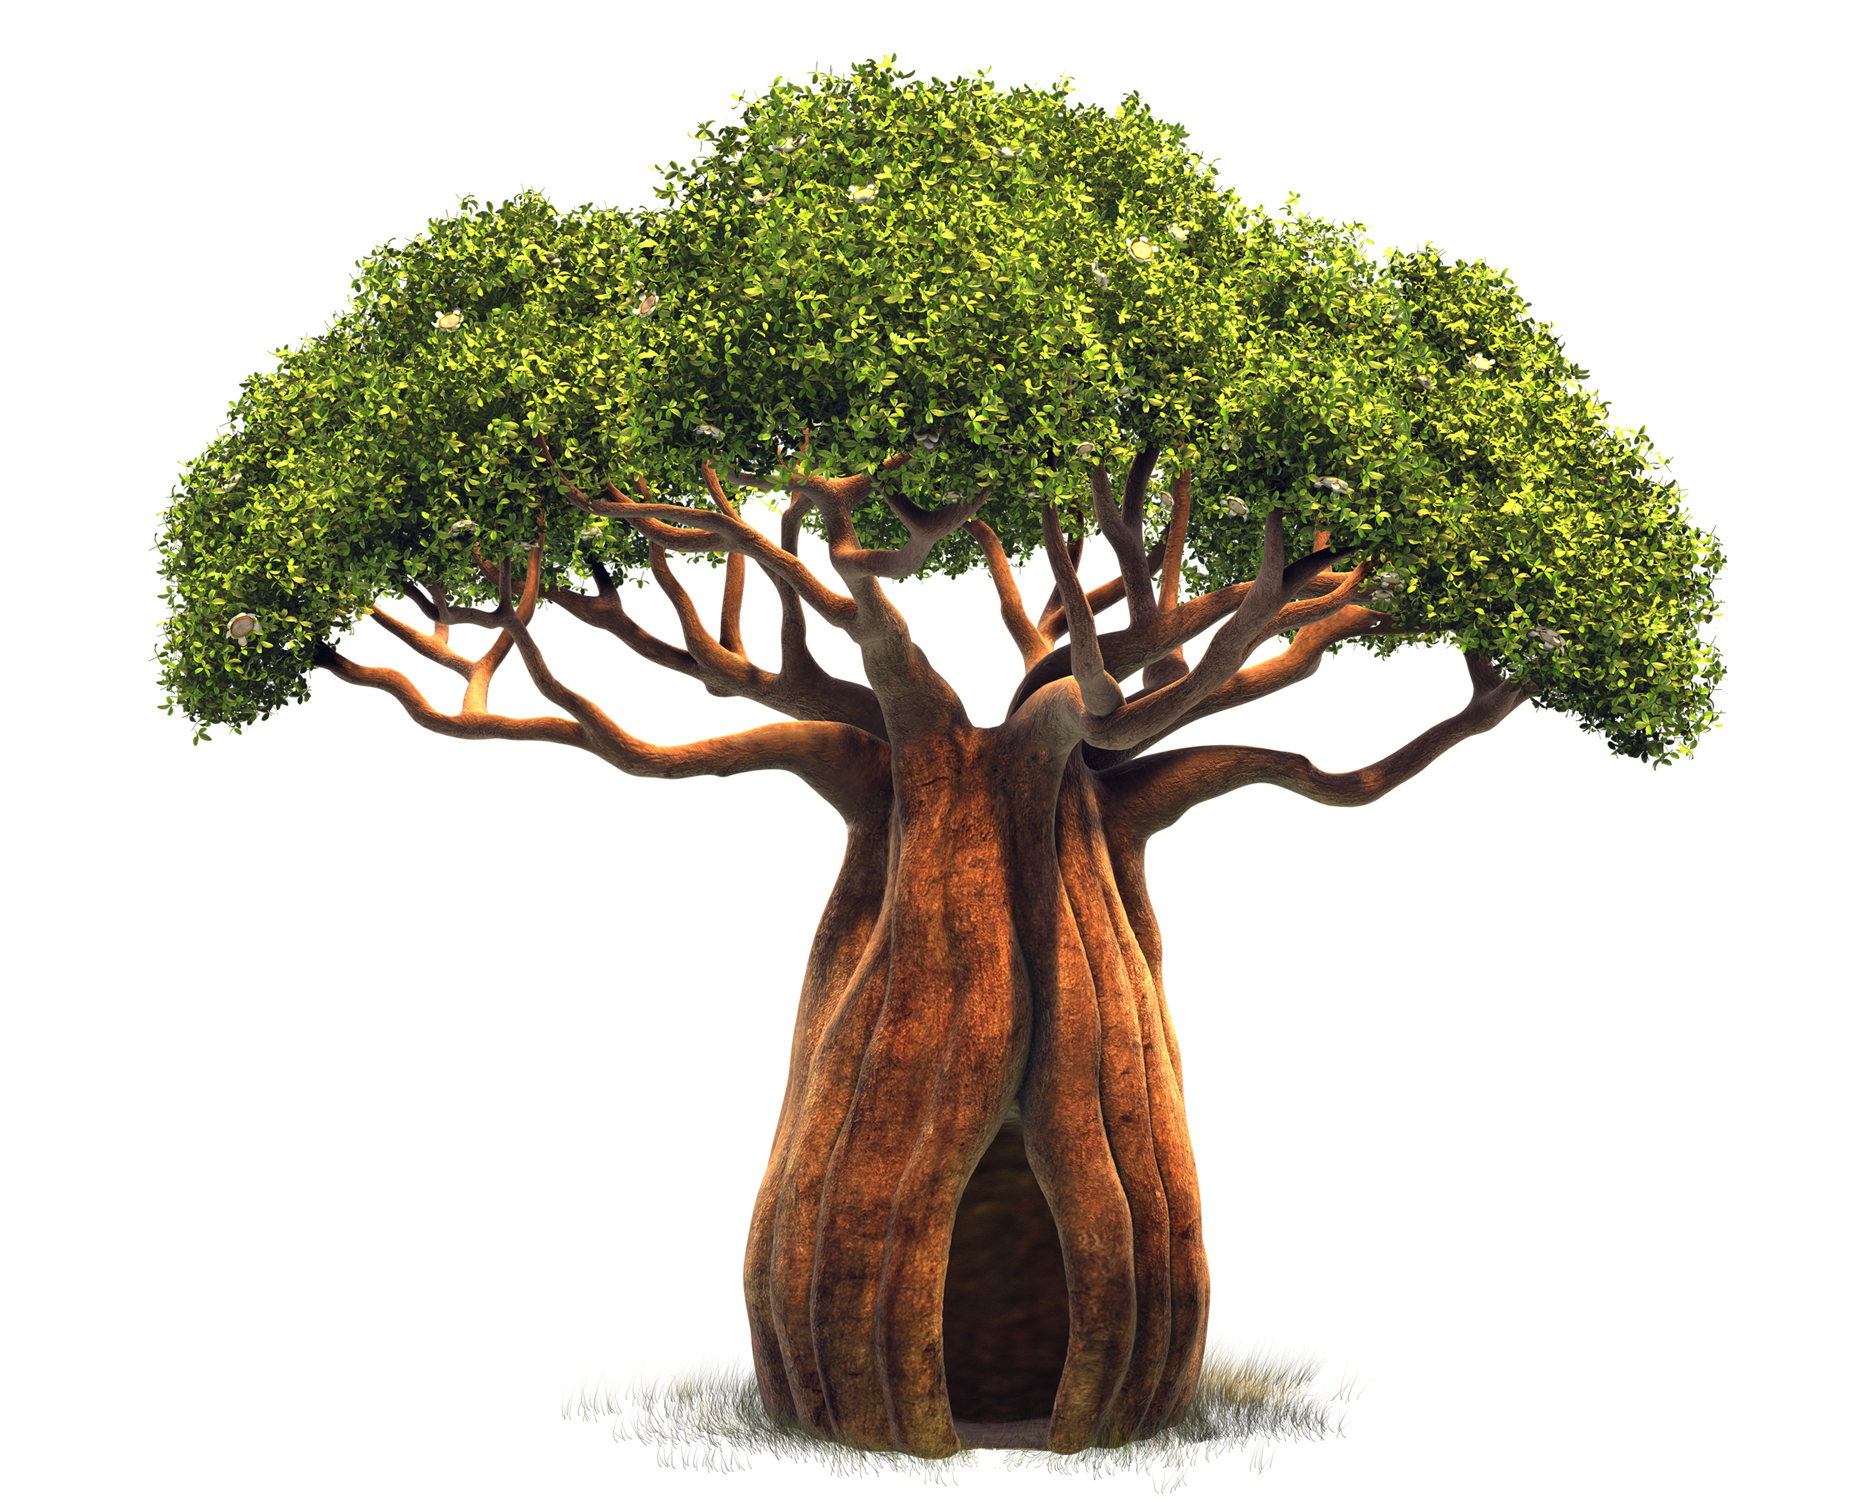 Baobab Tree clipart #1, Download drawings